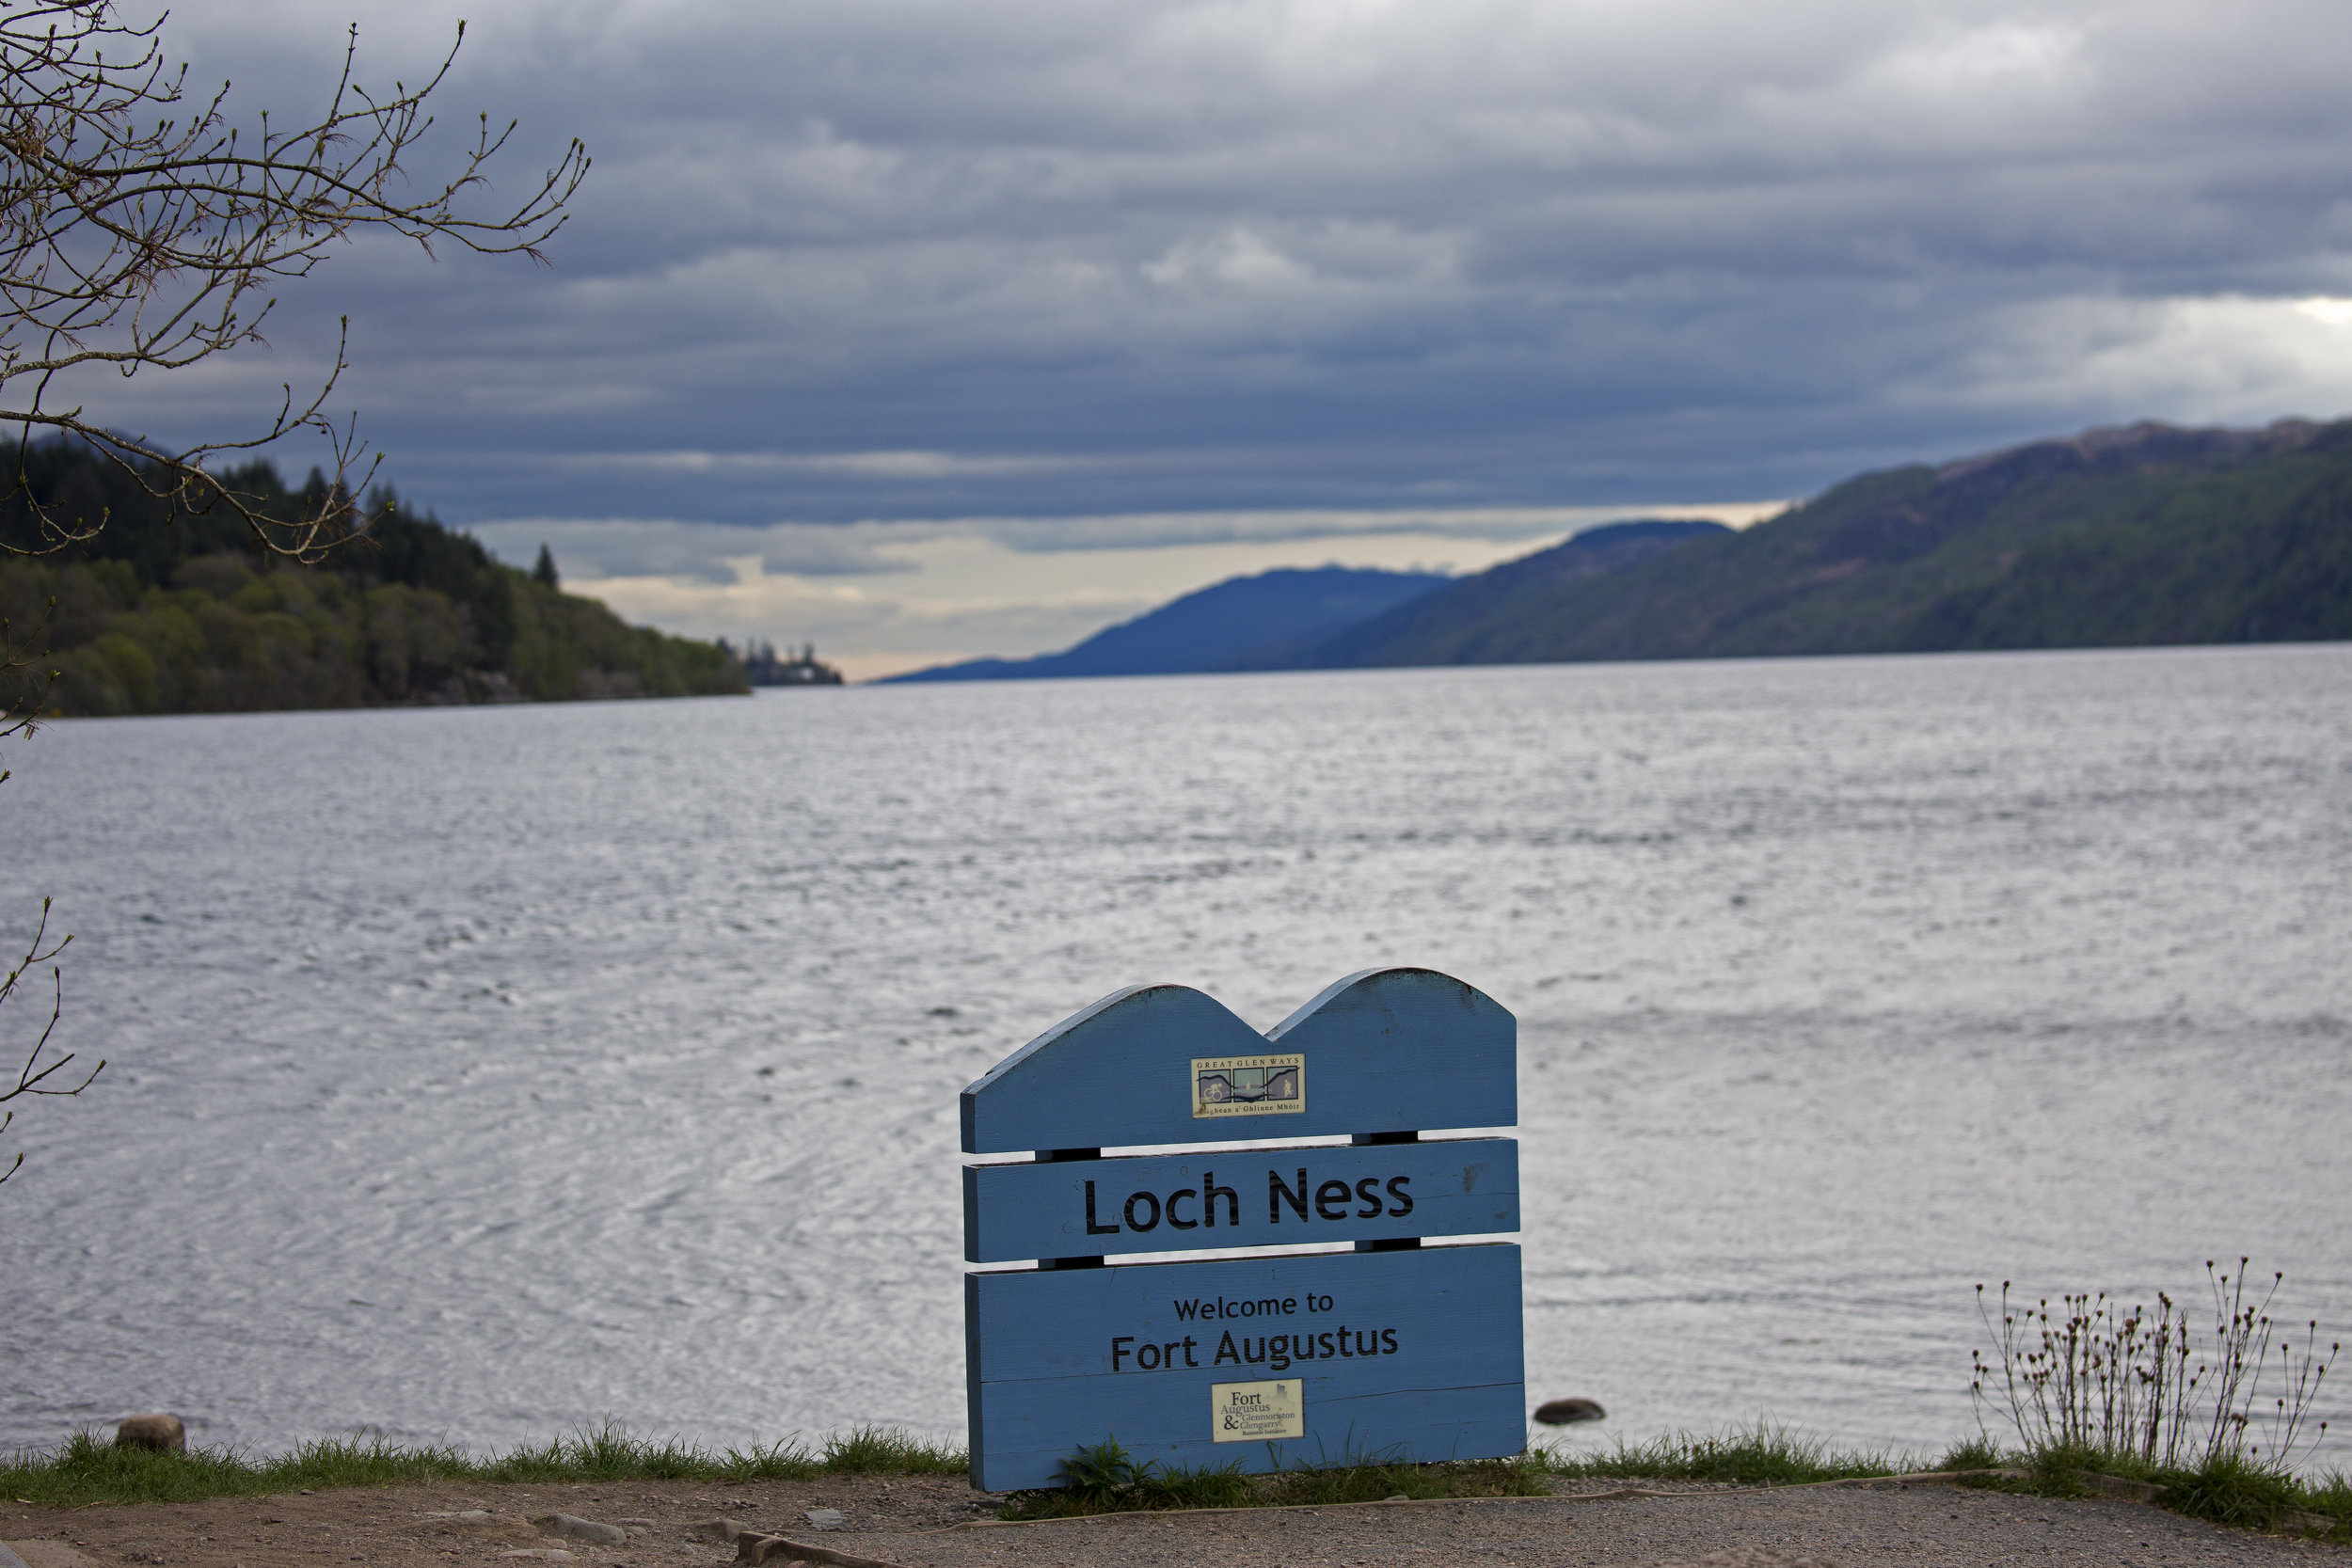 Time to head back onto Loch Ness.